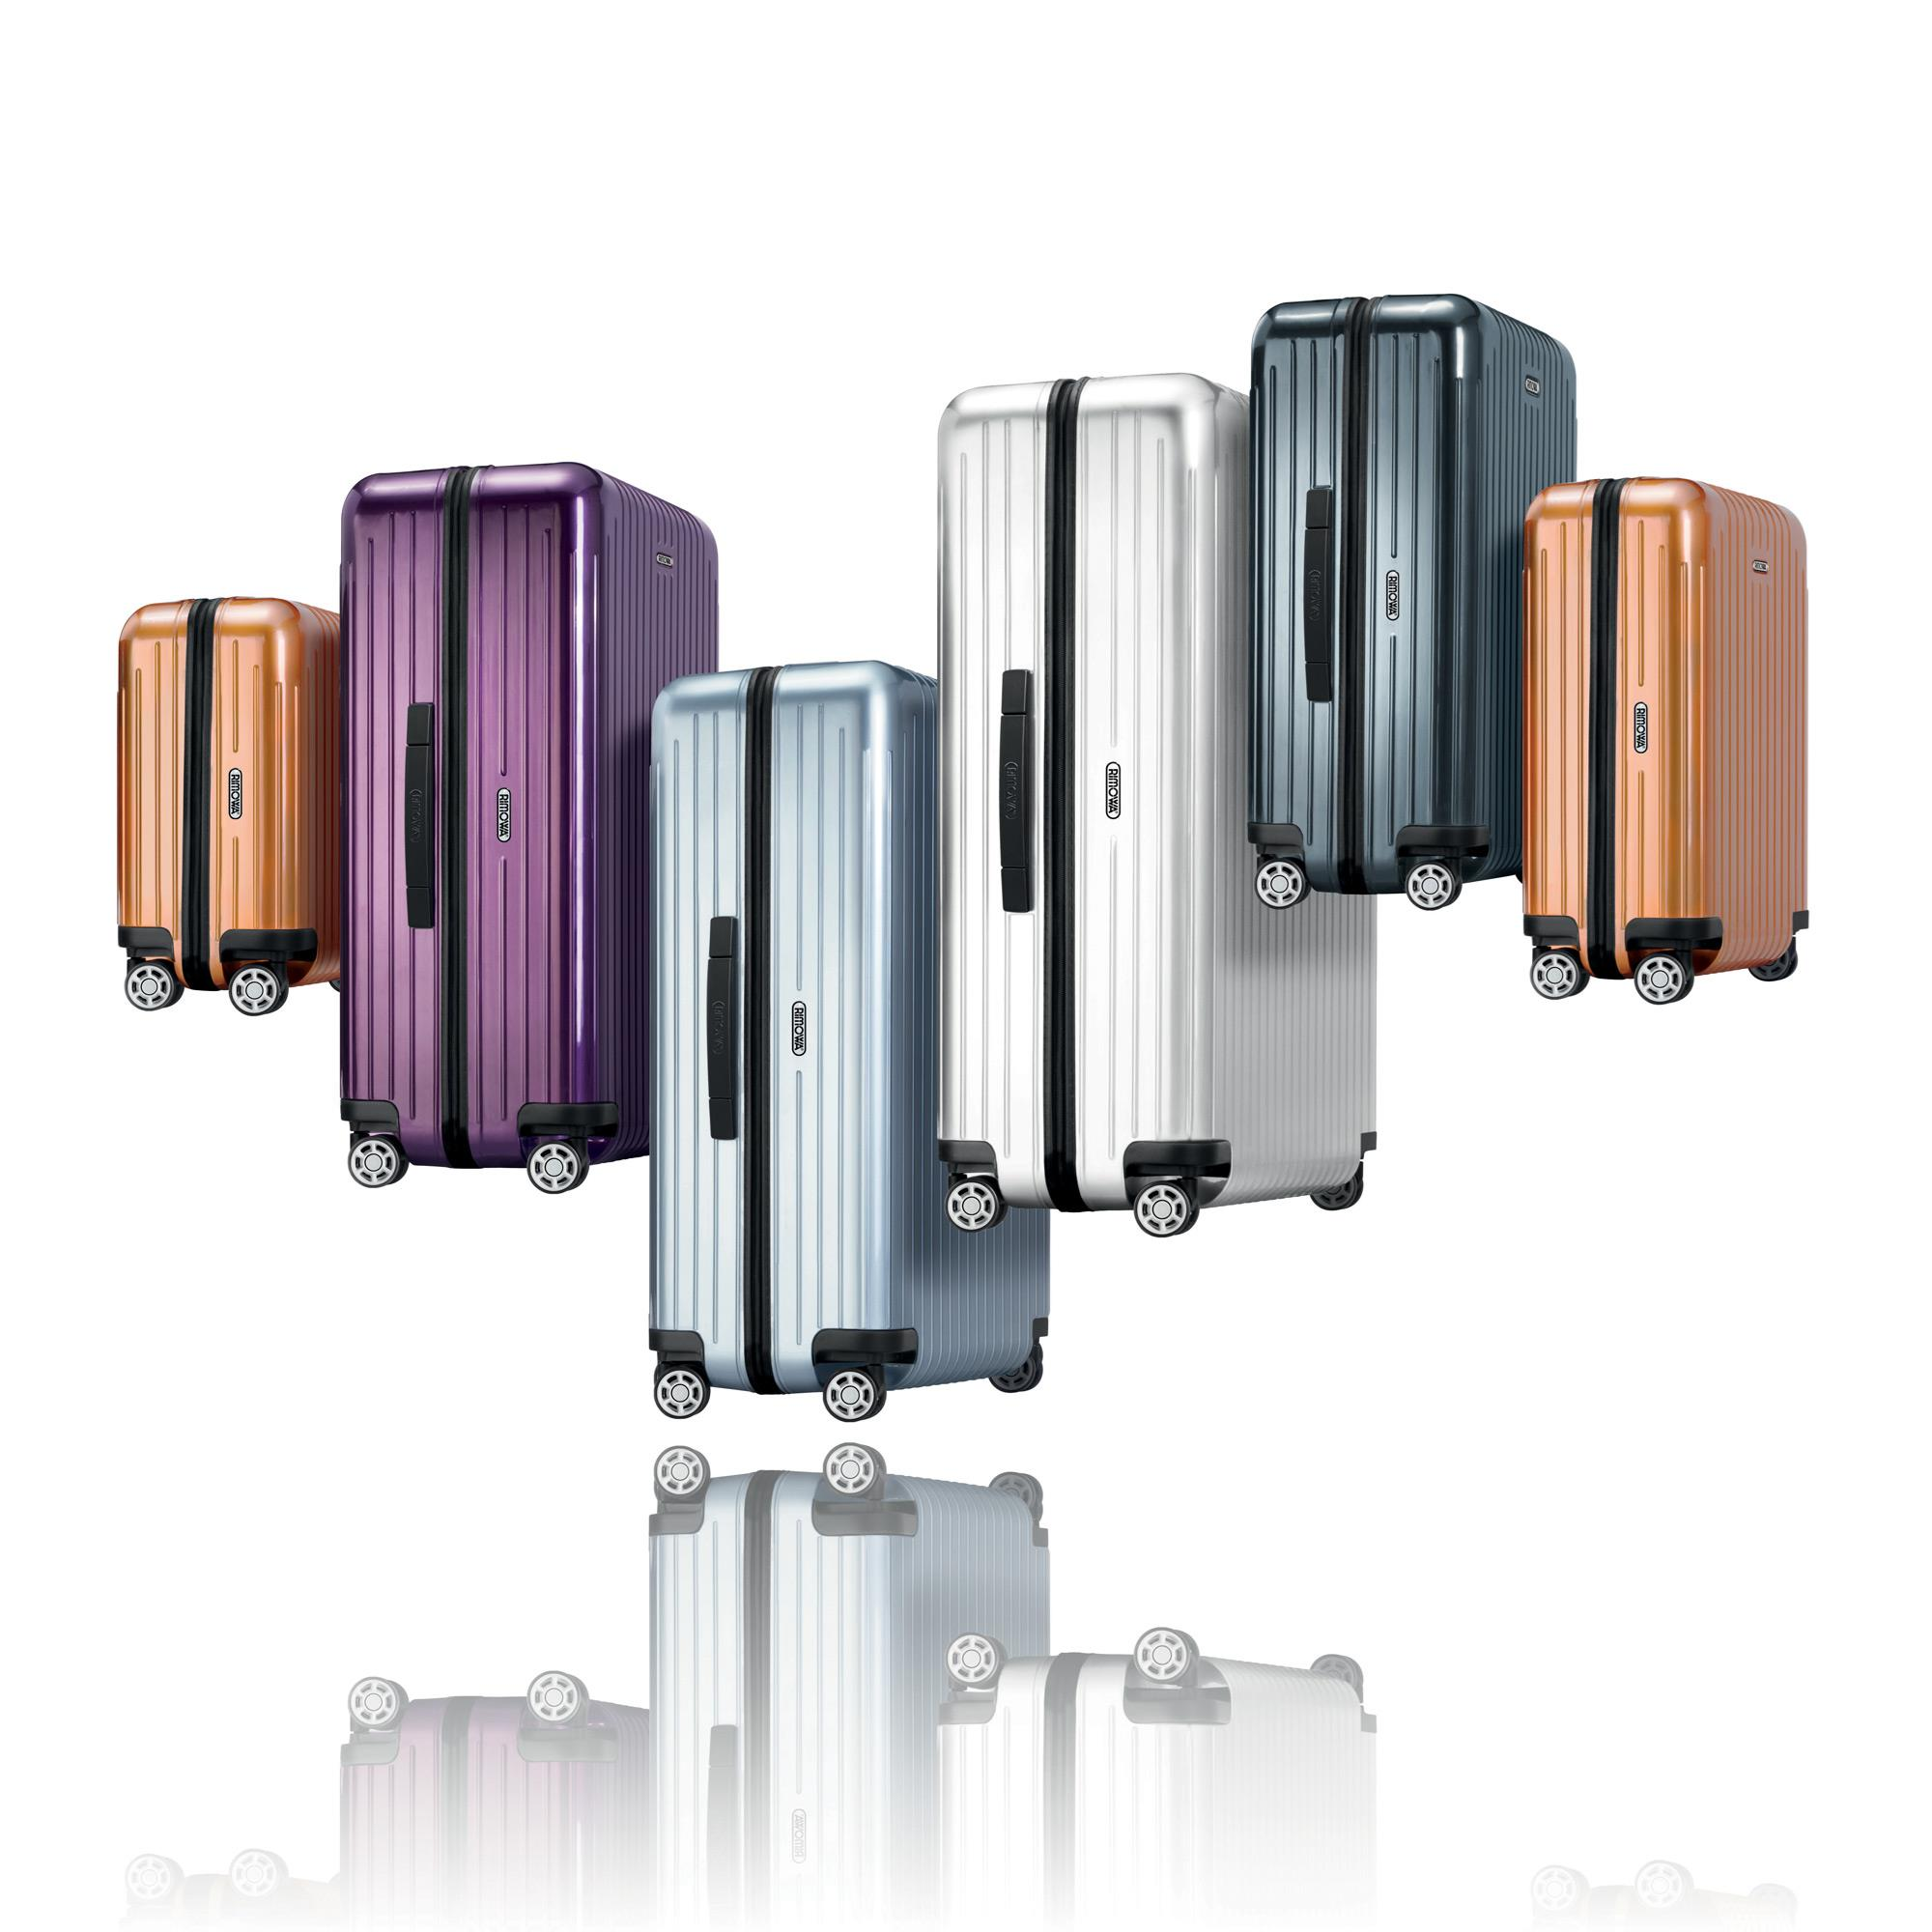 rimowa travelling suitcases and luggage. Black Bedroom Furniture Sets. Home Design Ideas